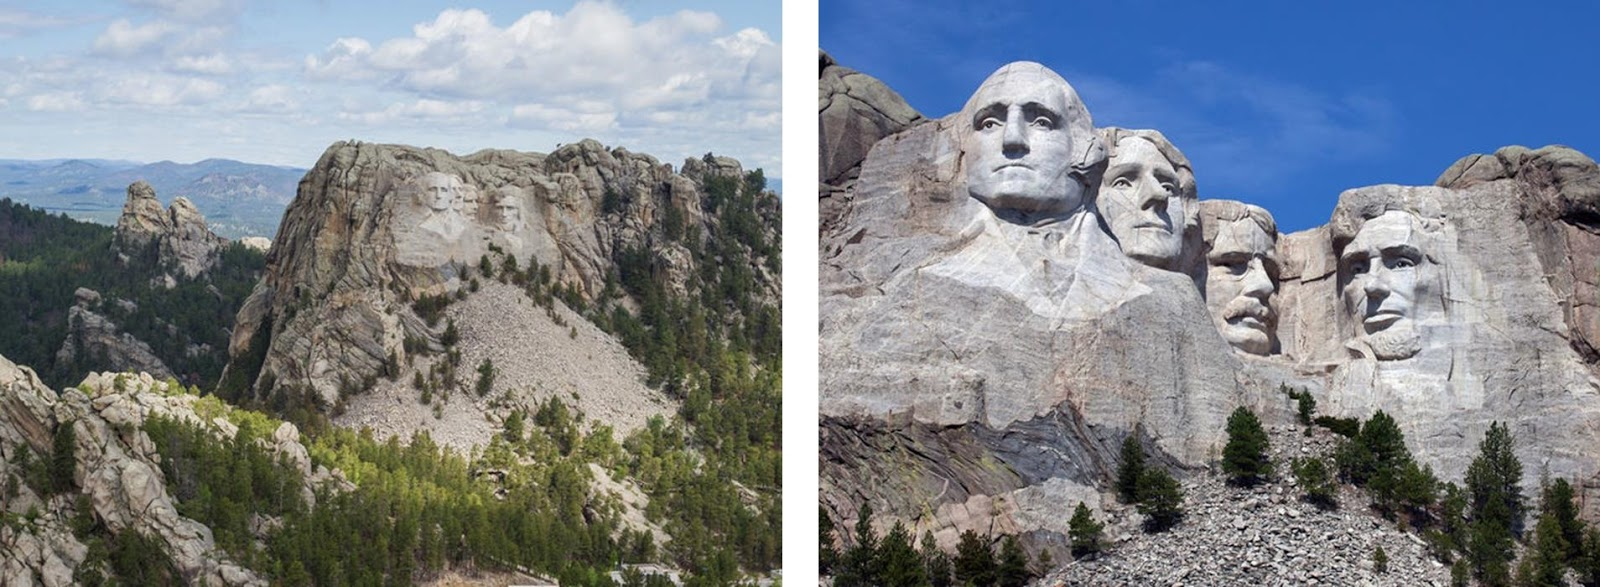 Mount Rushmore National Memorial, United States